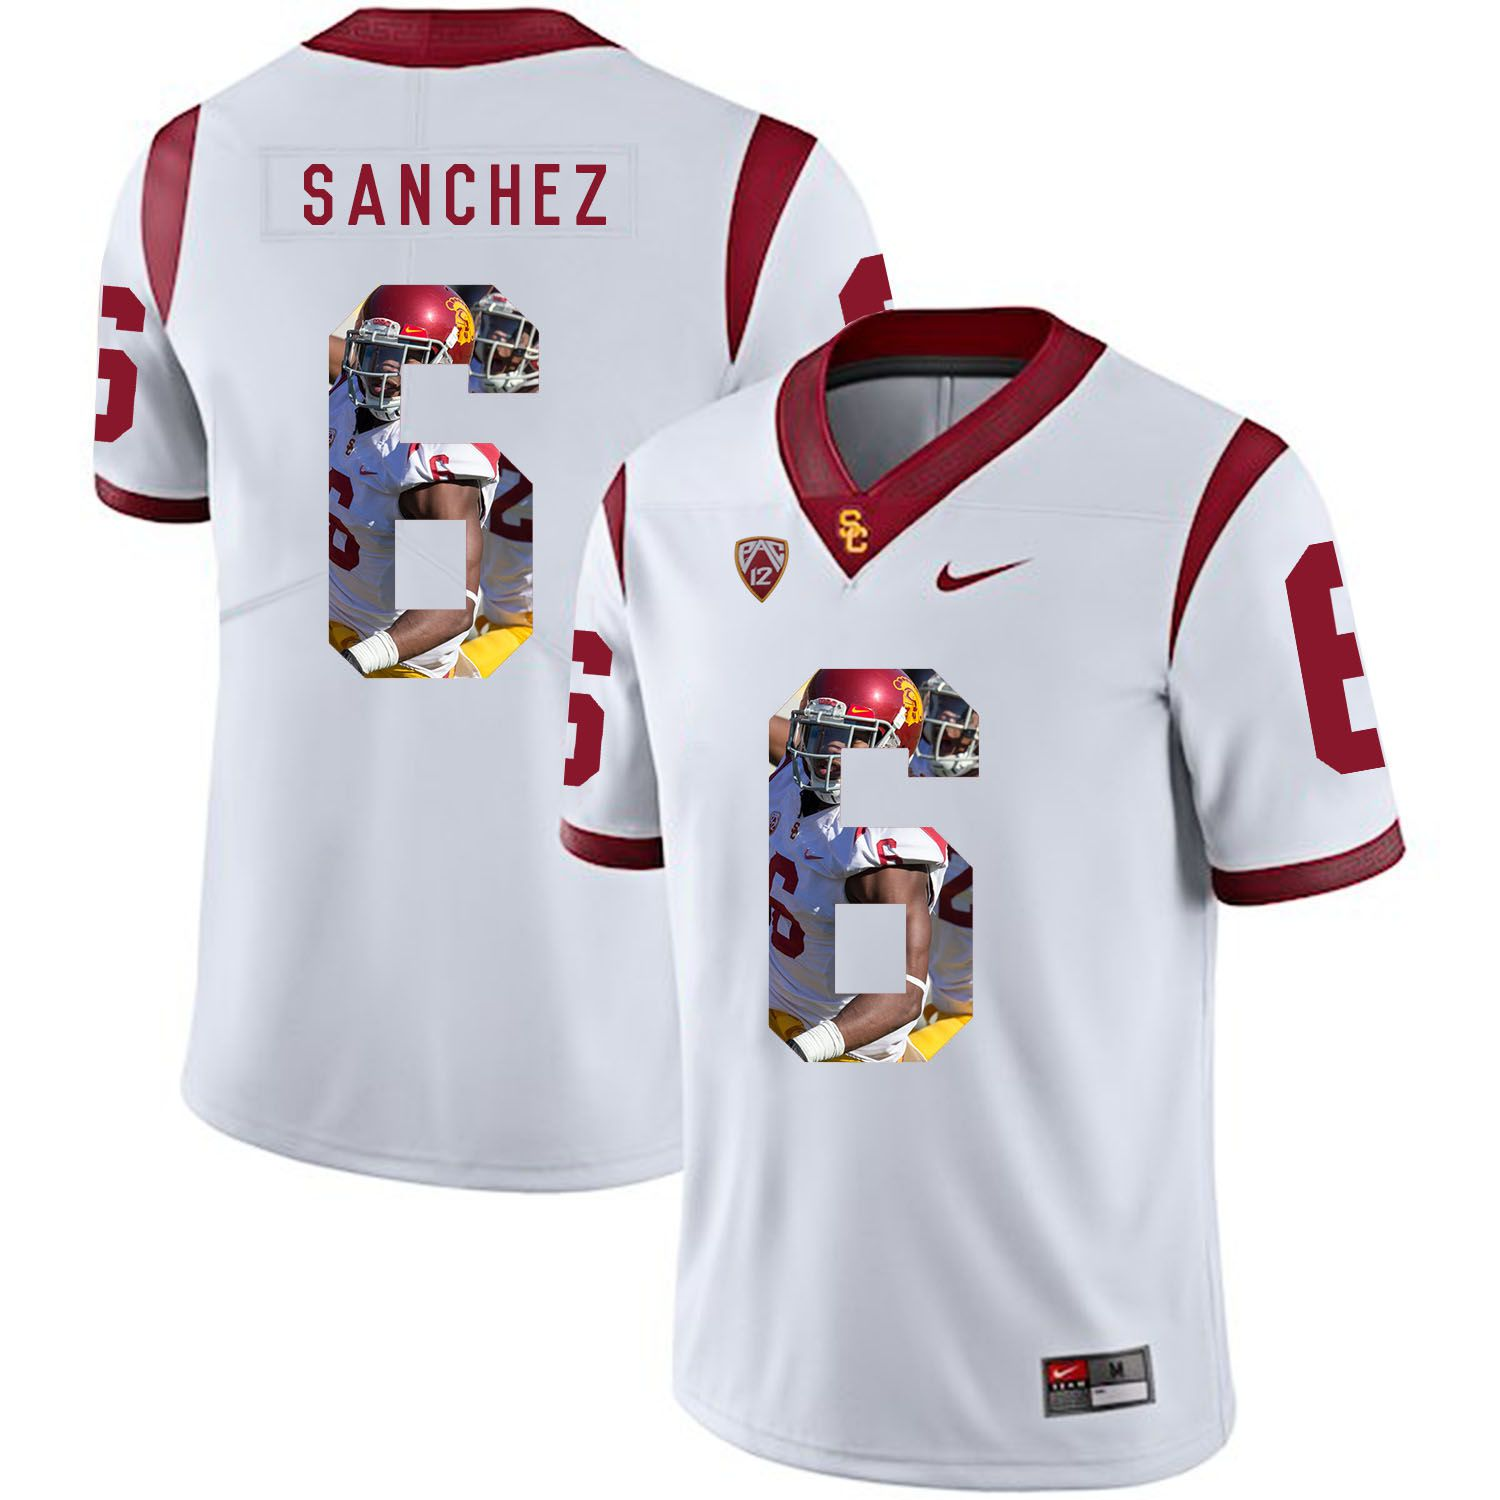 Men USC Trojans 6 Sanchez White Fashion Edition Customized NCAA Jerseys